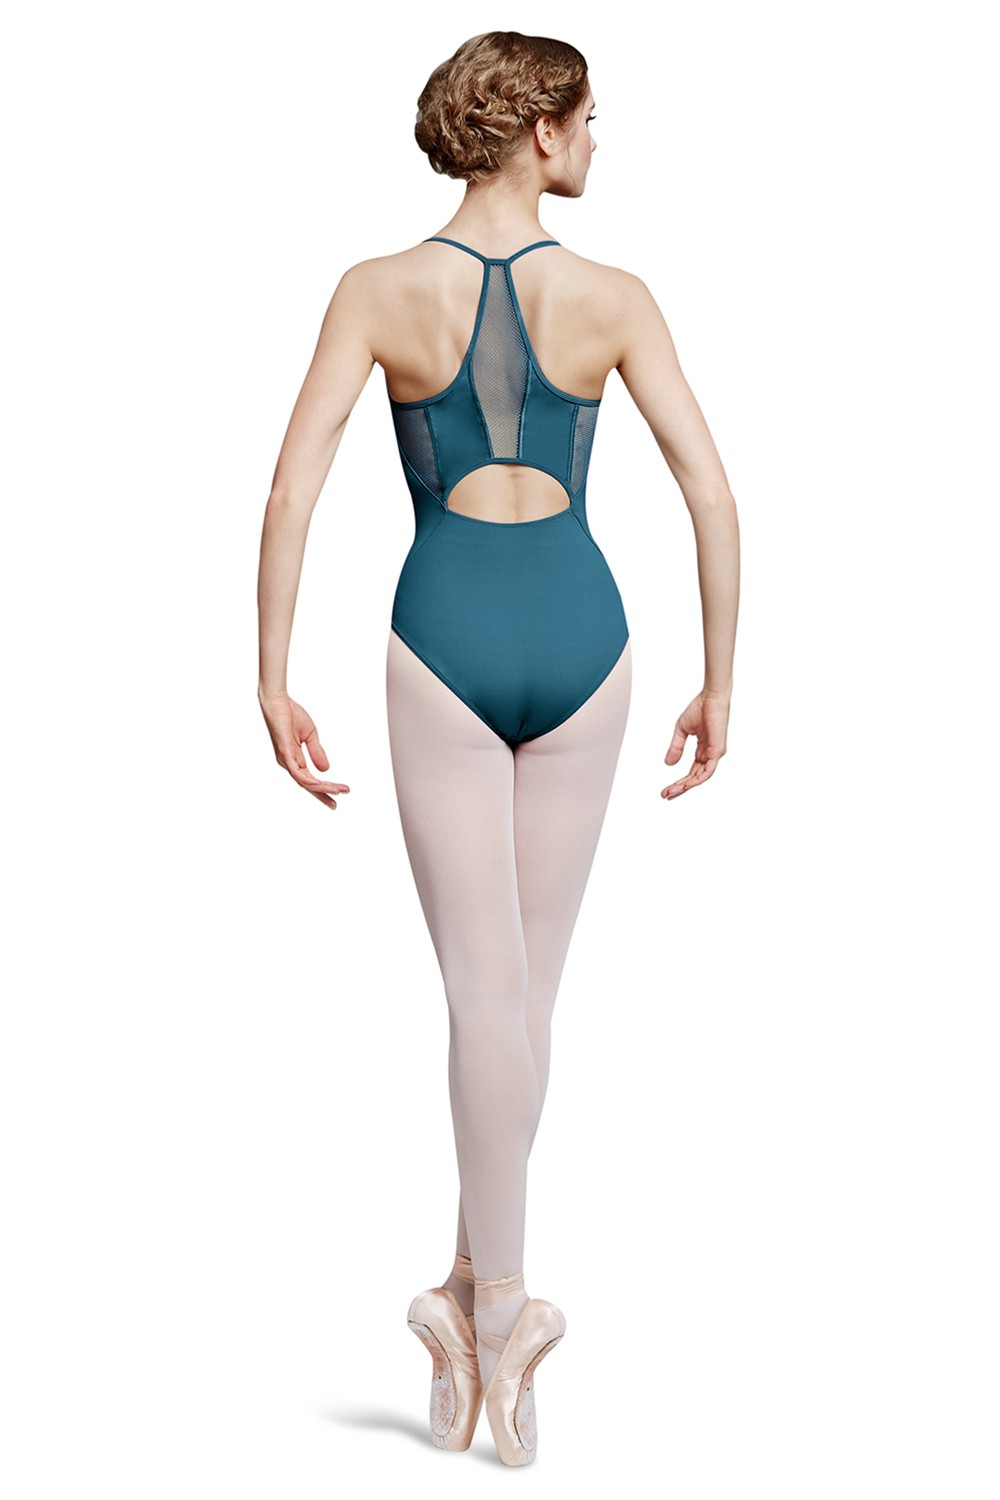 Diamond Women's Dance Leotards